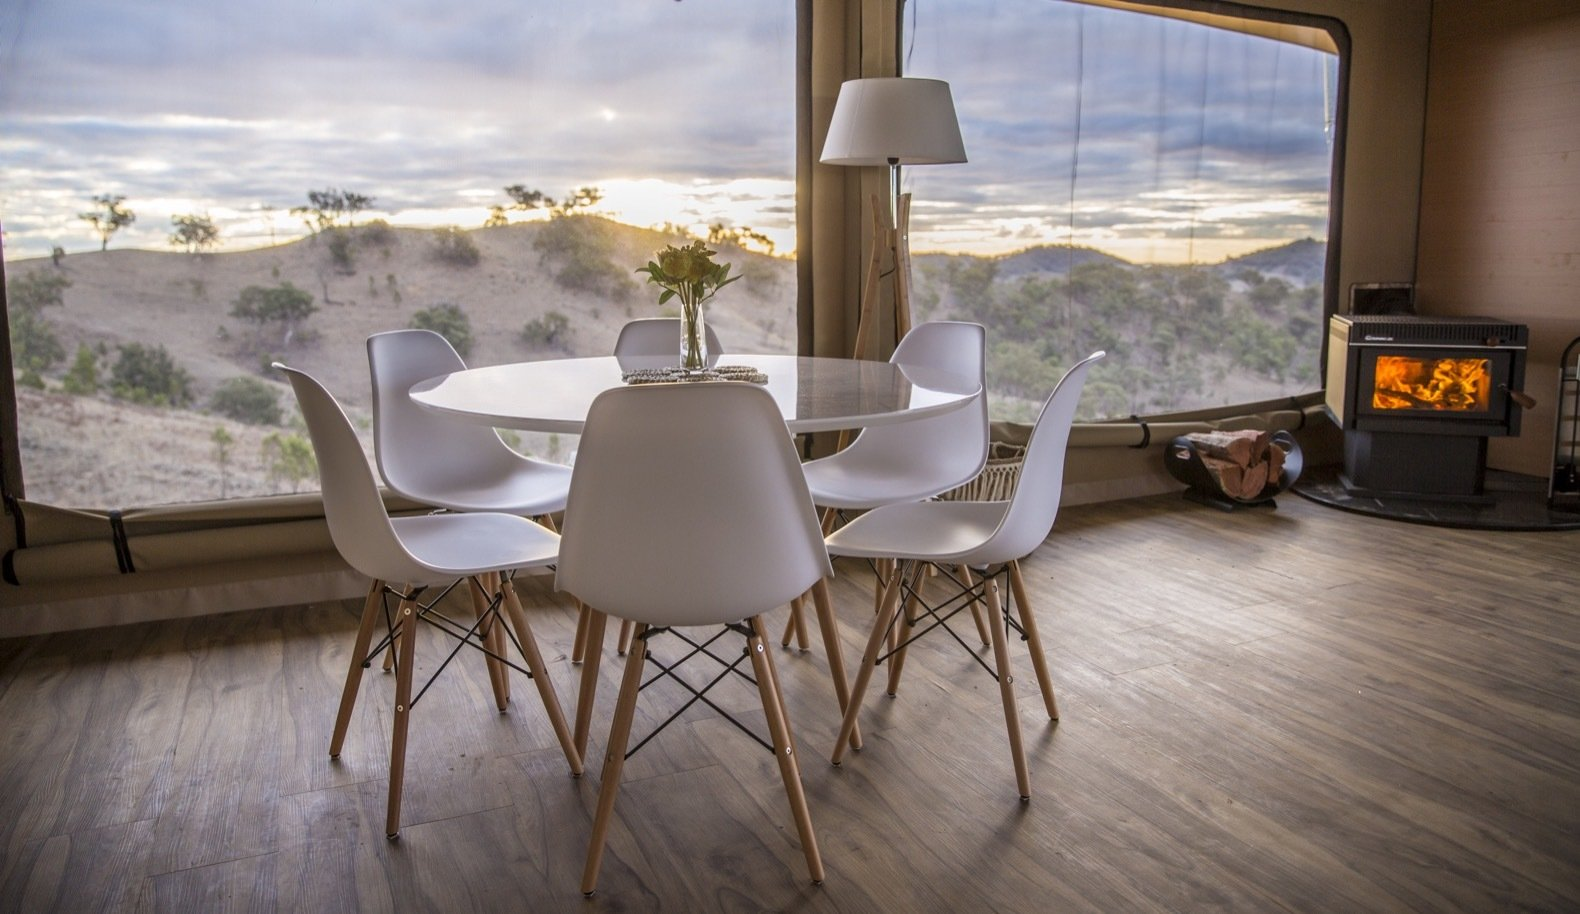 Dining Room, Table, Chair, Wood Burning Fireplace, Medium Hardwood Floor, and Floor Lighting Large fly windows and doors open the interiors up to the outdoors.  Photo 6 of 11 in Escape to the Australian Bush in Style With These Eco-Friendly, Luxe Tents